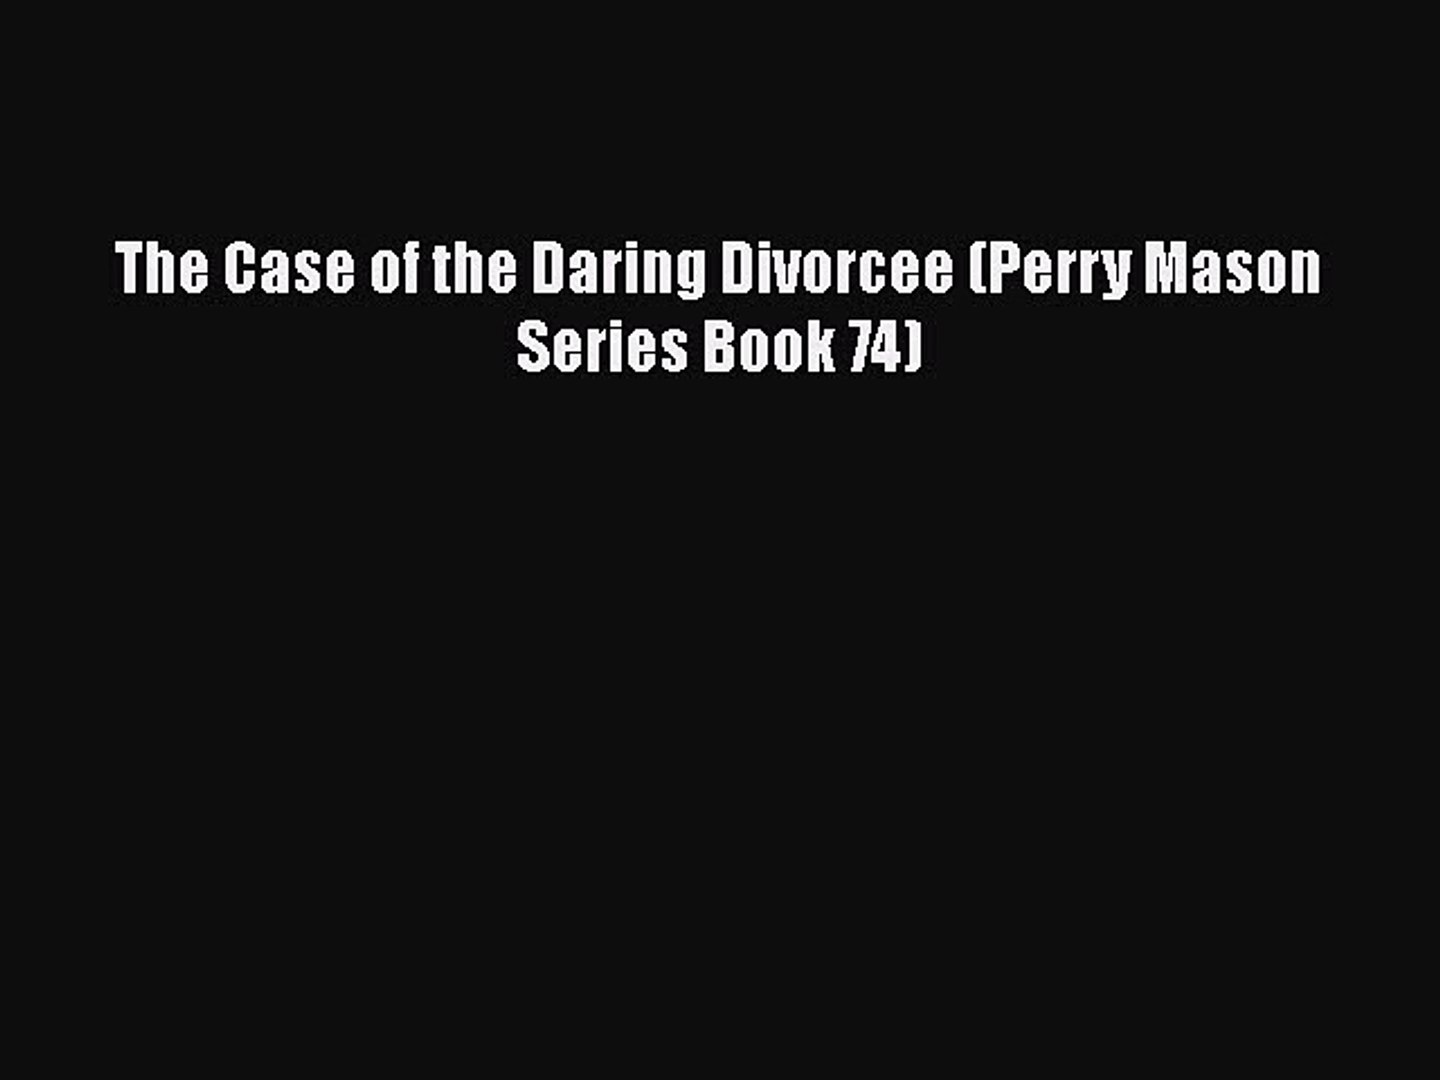 Read The Case of the Daring Divorcee (Perry Mason Series Book 74) Ebook Online